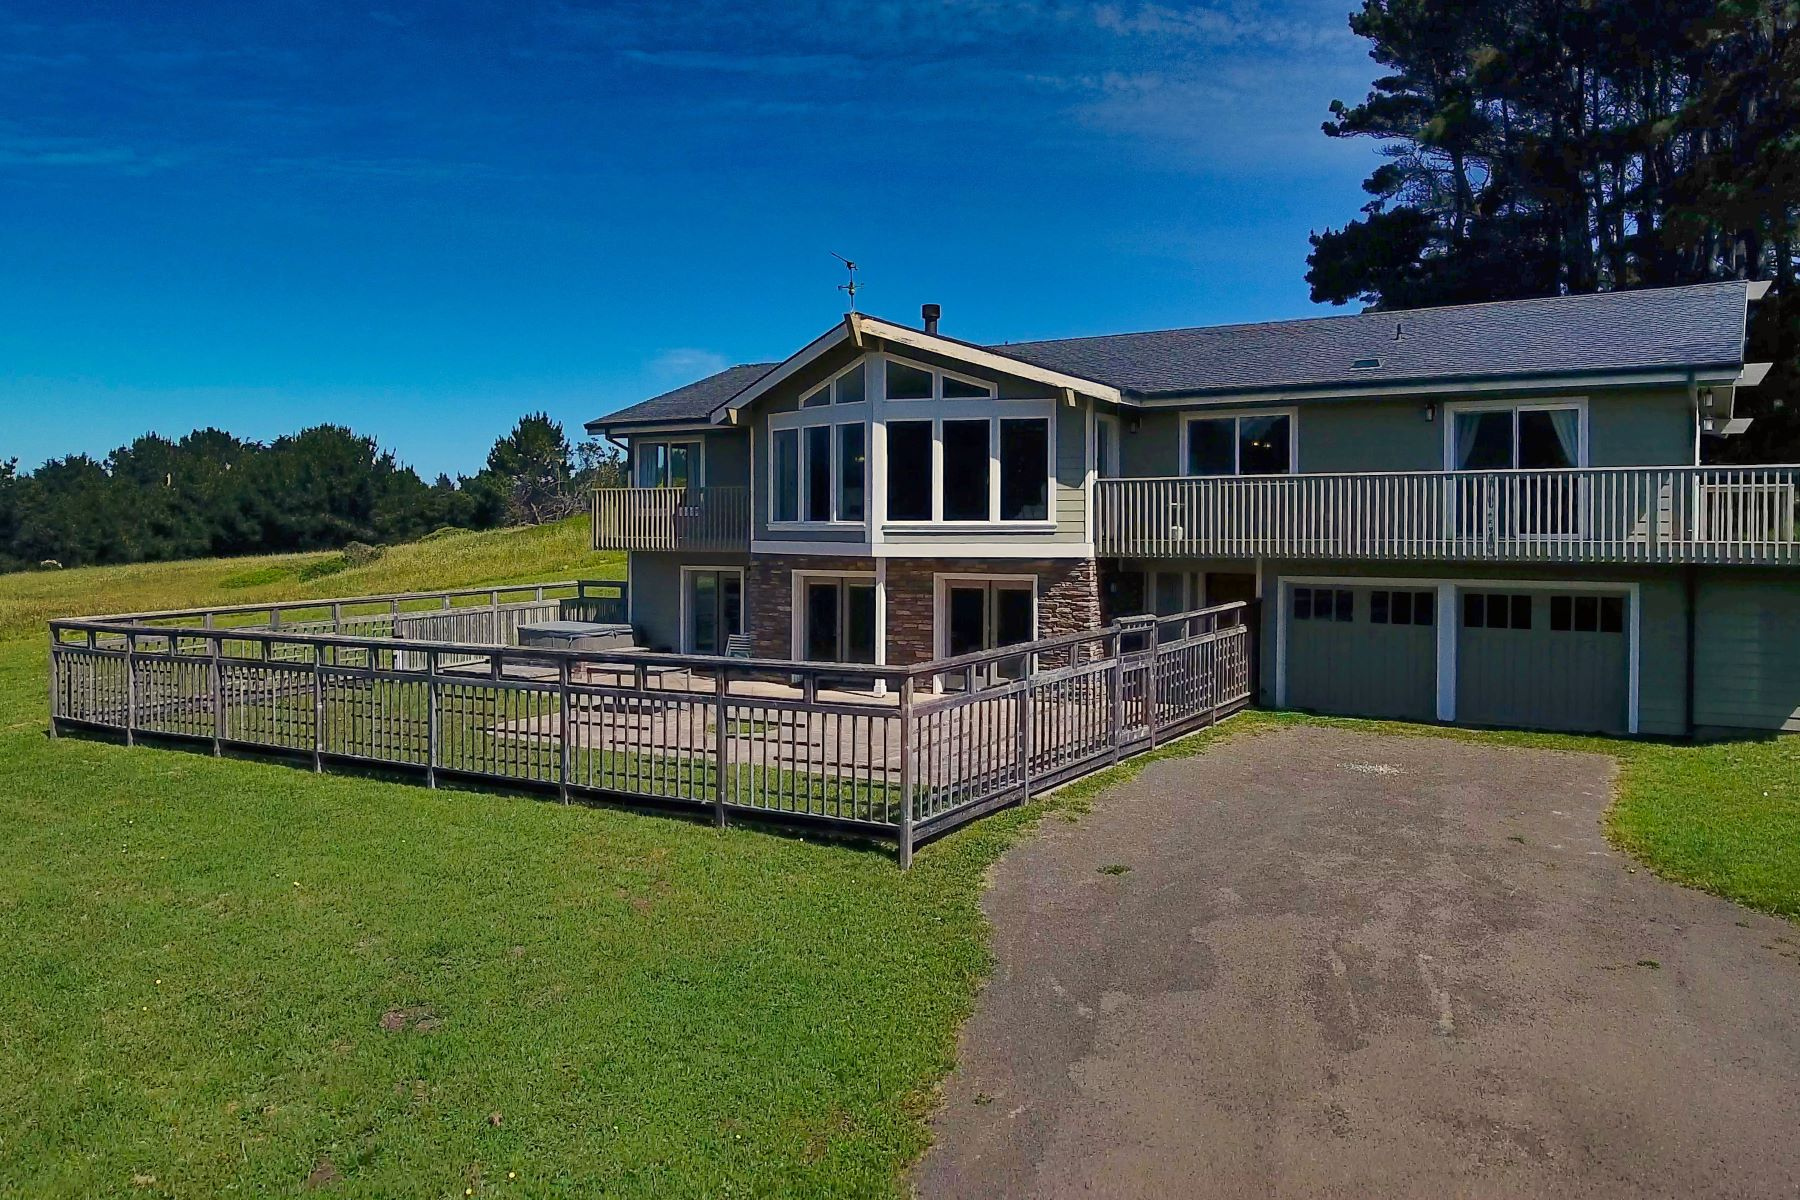 Single Family Home for Sale at Entertainers Delight! 45681 Cypress Drive Mendocino, California 95460 United States